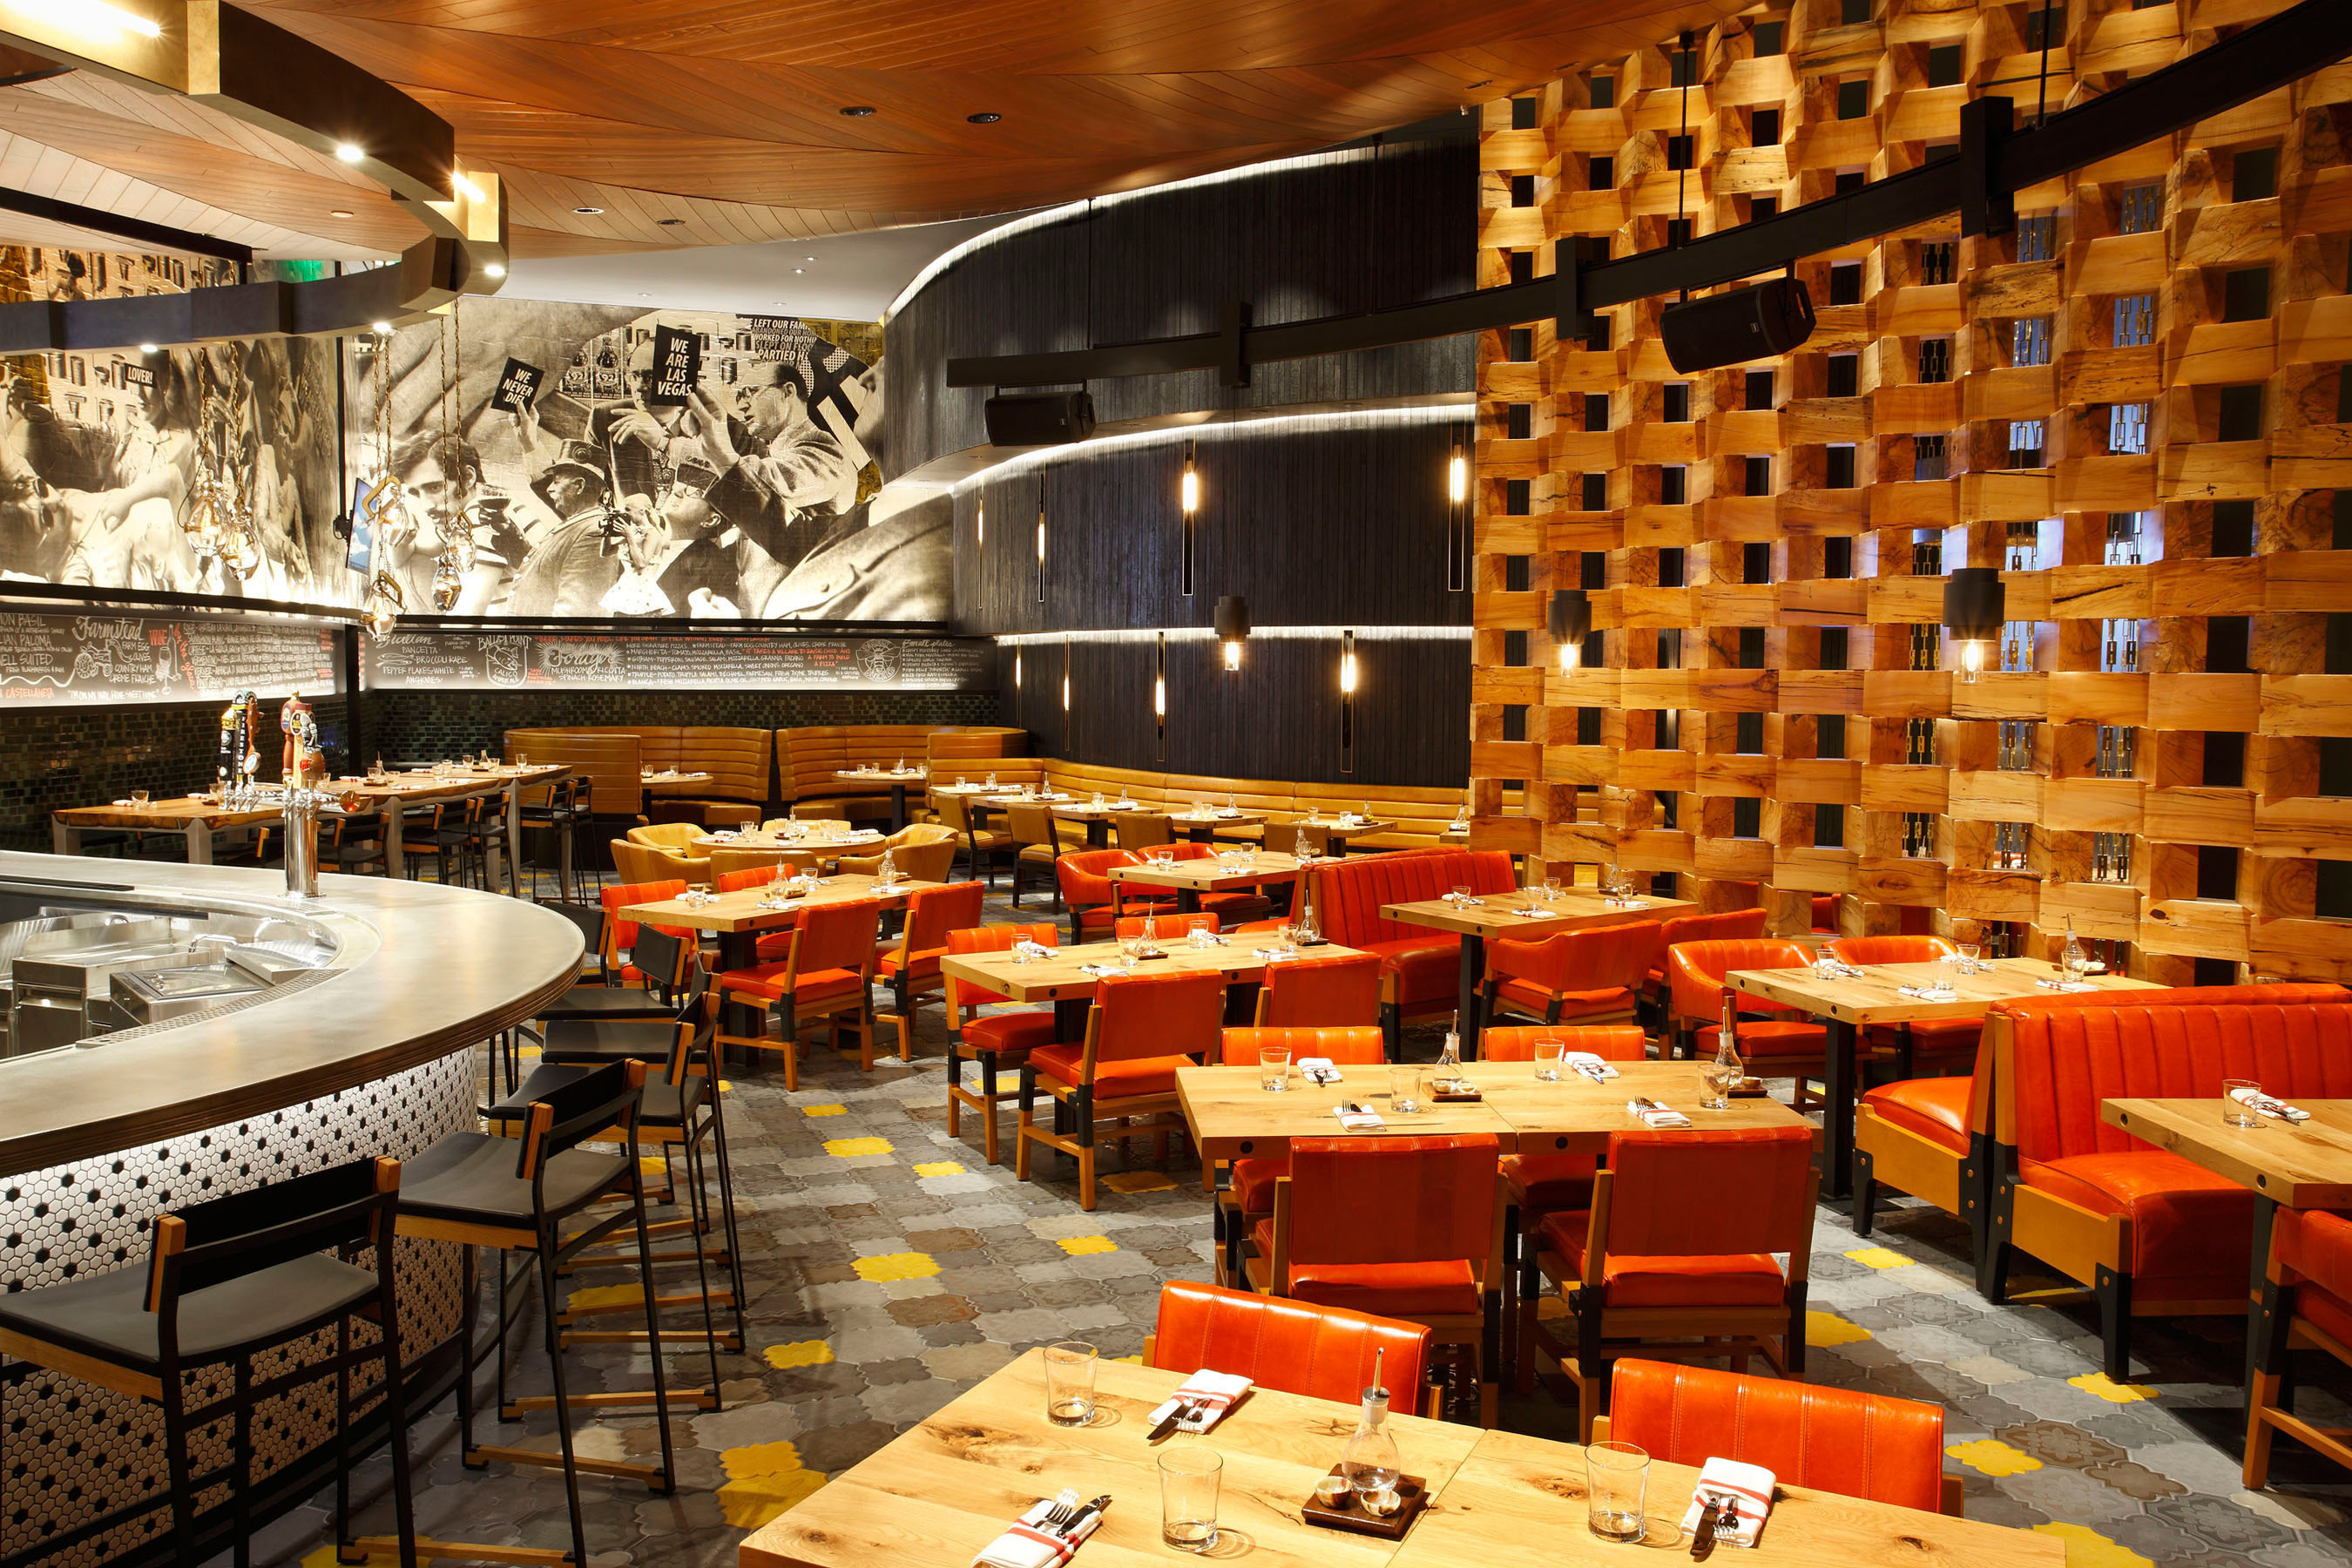 FIVE50 Pizza Bar, the first casual concept from James Beard award-winning Chef Shawn McClain, is now open at ARIA Resort & Casino in Las Vegas. Chef McClain's newest restaurant is serving up wood-fired pizzas, flavorful small plates, artisanal charcuterie, international cheeses, seasonal salads, handmade pastas and decadent desserts, all complemented by an impressive collection of carefully selected craft beers. Designed by celebrated architect David Rockwell and Rockwell Group, the industrial-chic space blends the warmth, soul and nostalgia of classic pizzerias with the social energy and edgy vibe of the best bar scenes. www.arialasvegas.com/dining/restaurants/five50.  (PRNewsFoto/ARIA Resort & Casino)